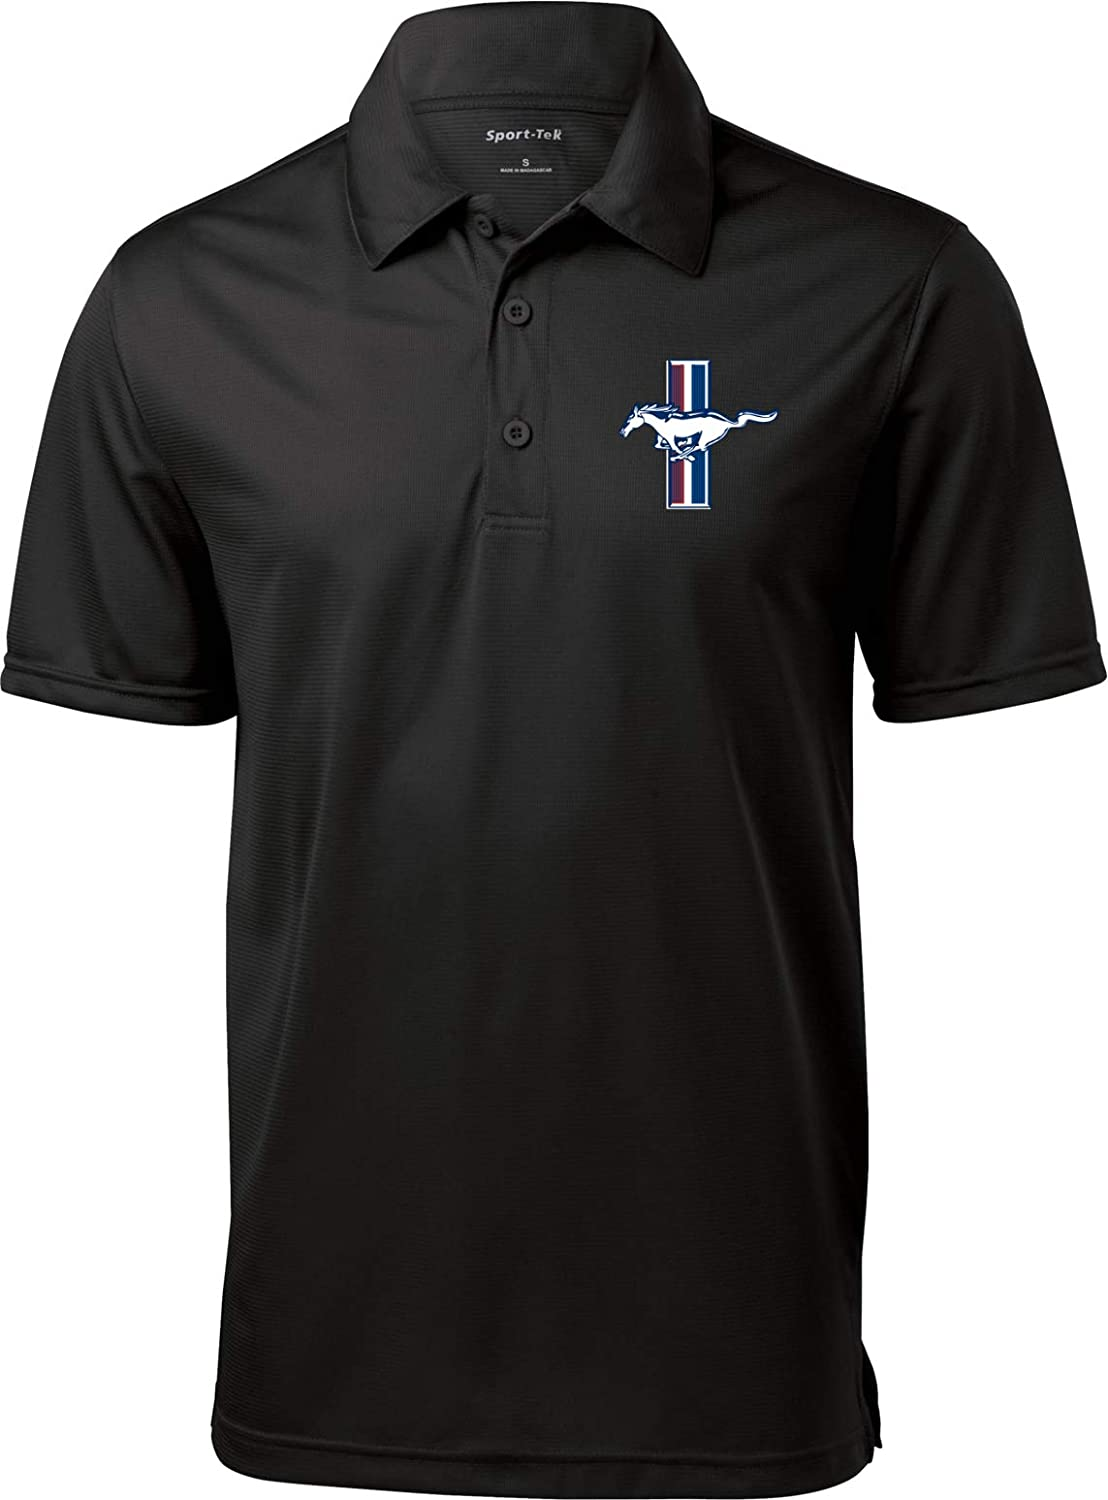 Buy Cool Shirts Ford Textured Polo Legend Lives Crest Pocket Print